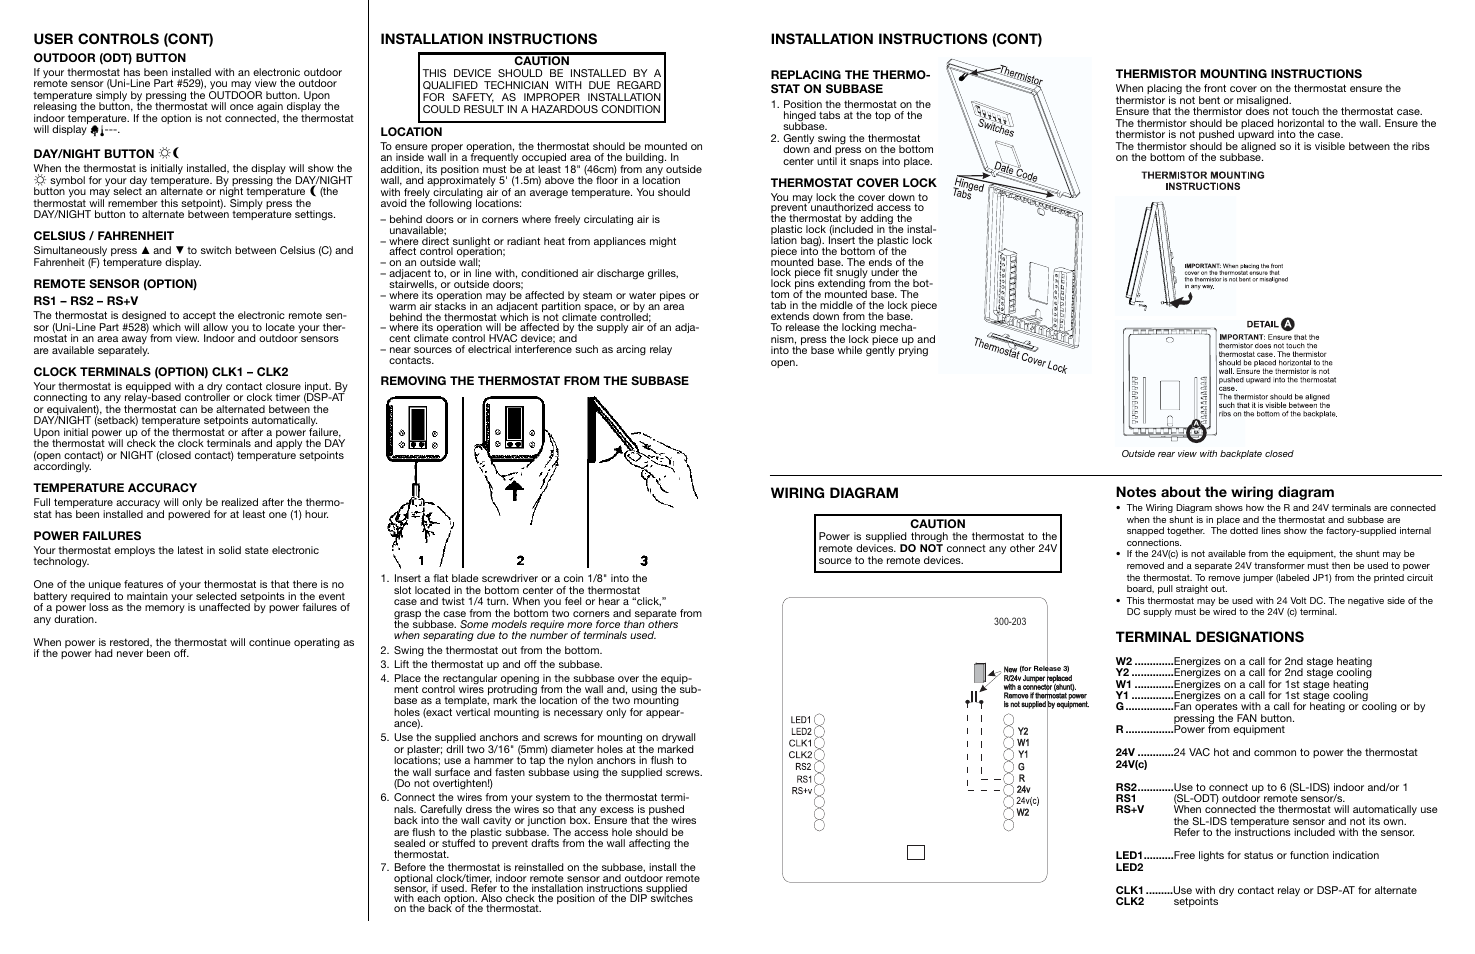 heating and cooling thermostat wiring diagrams for multiple stages